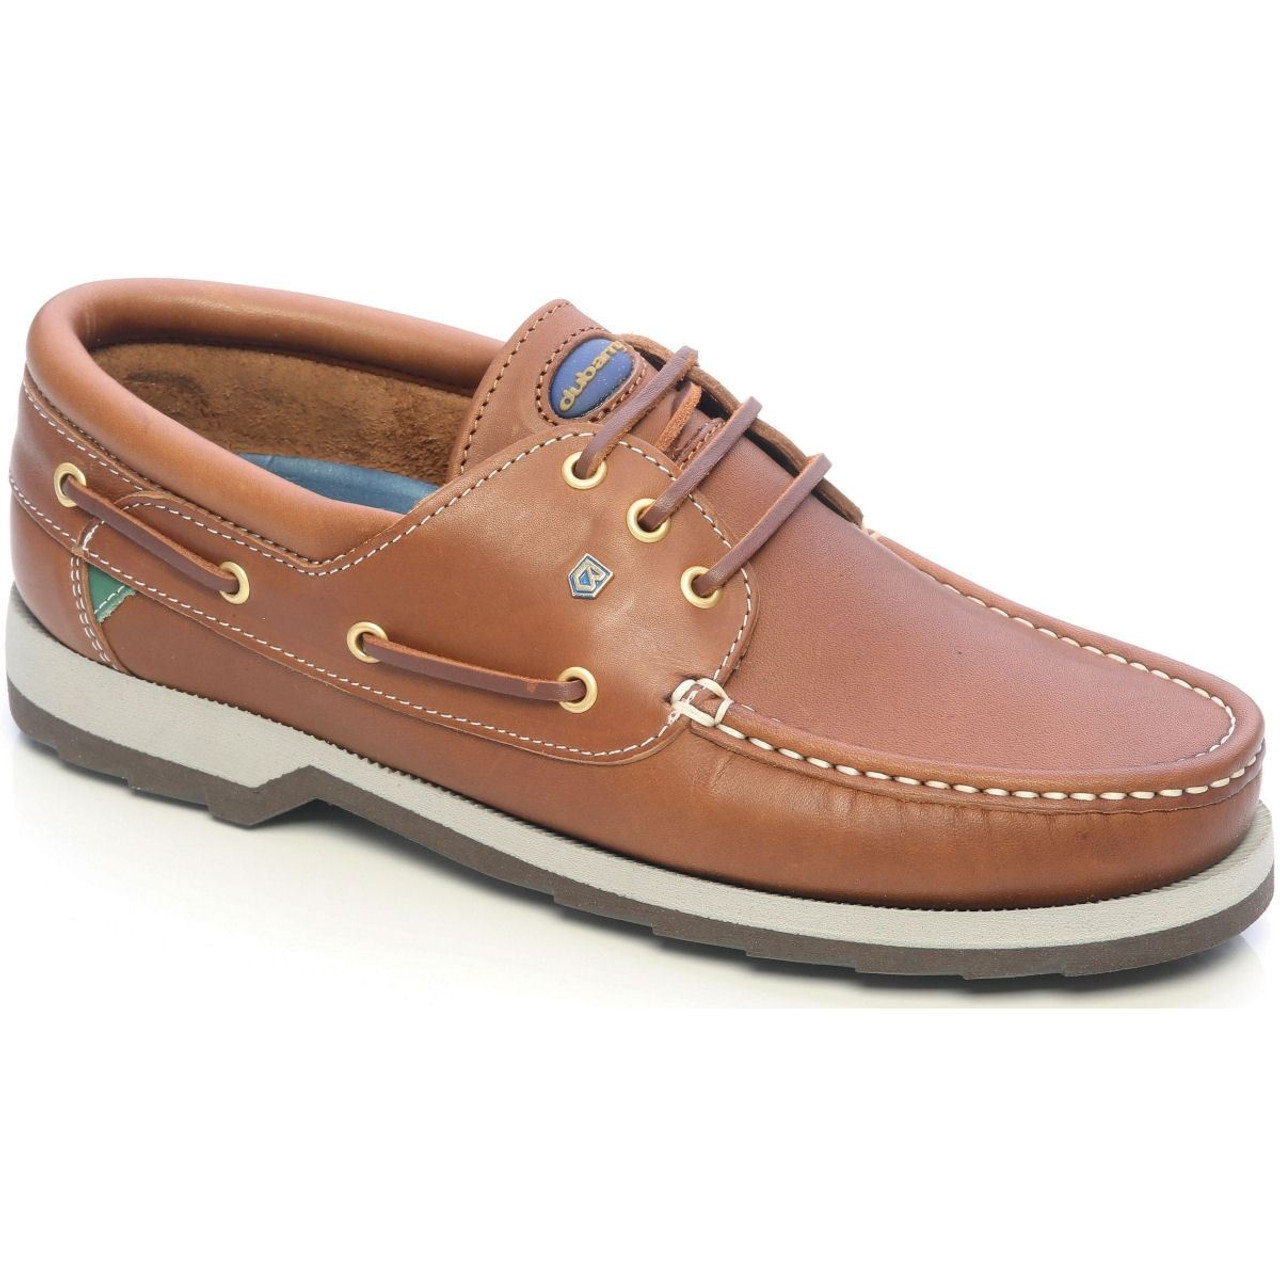 Dubarry Commander Deck Shoes in Brown